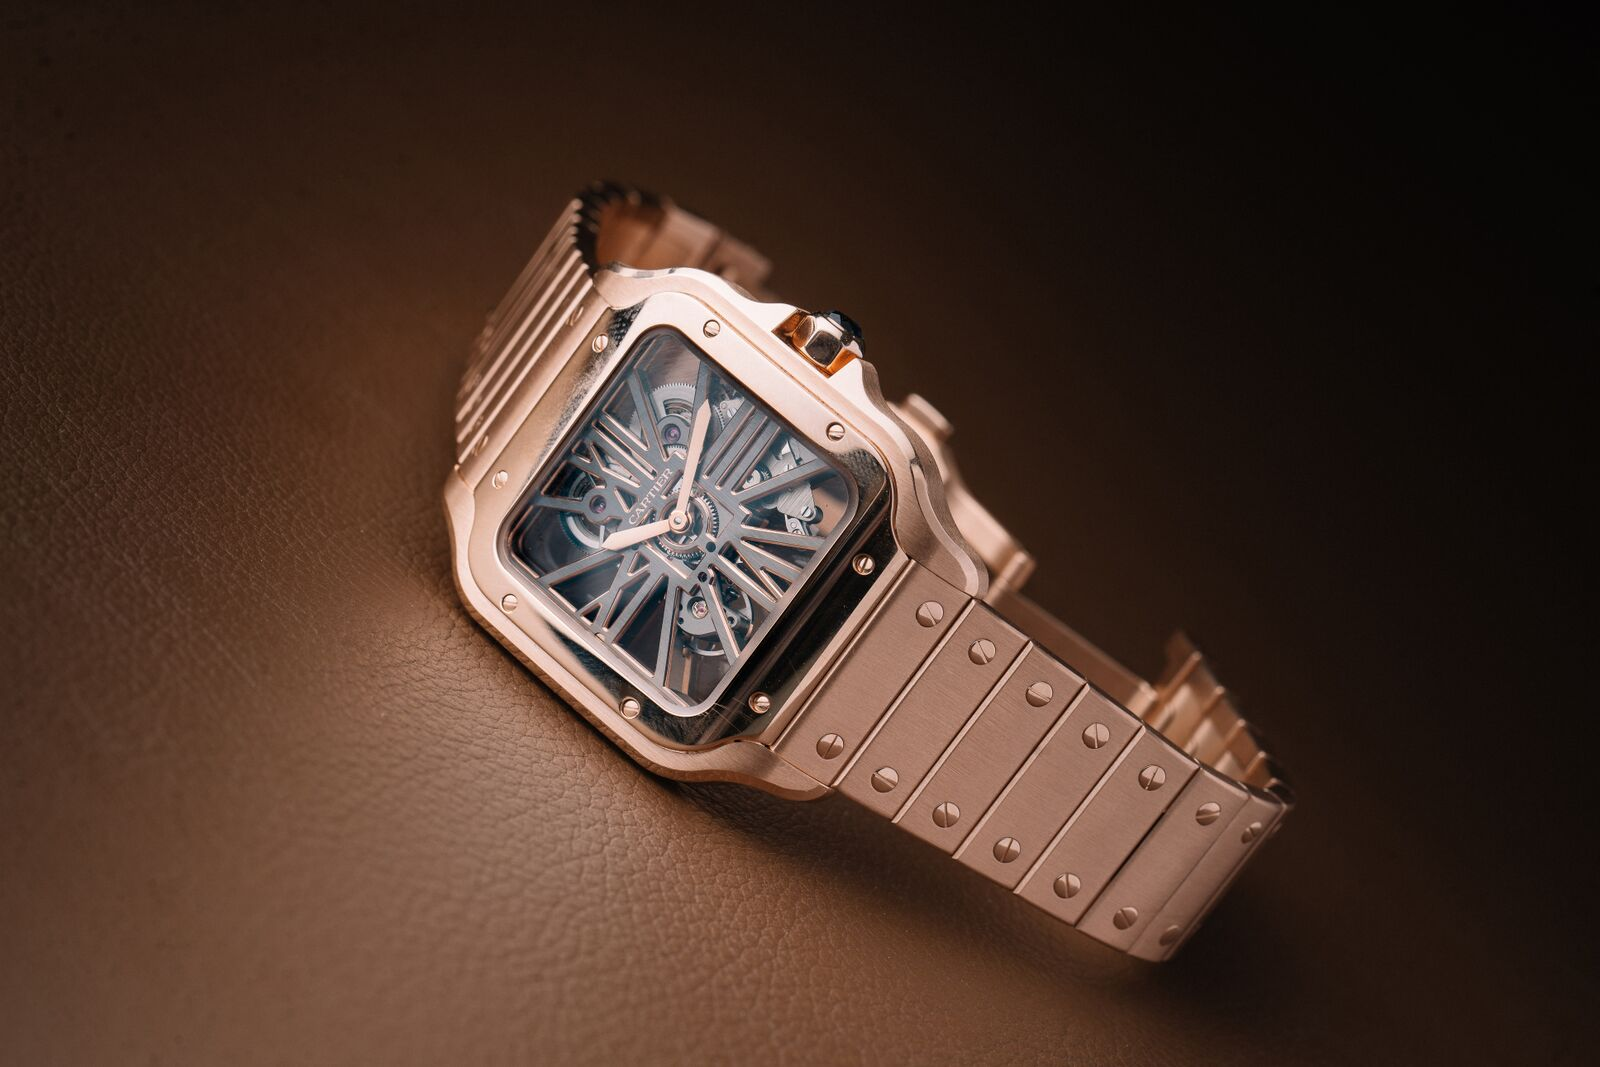 Santos de Cartier Skeleton